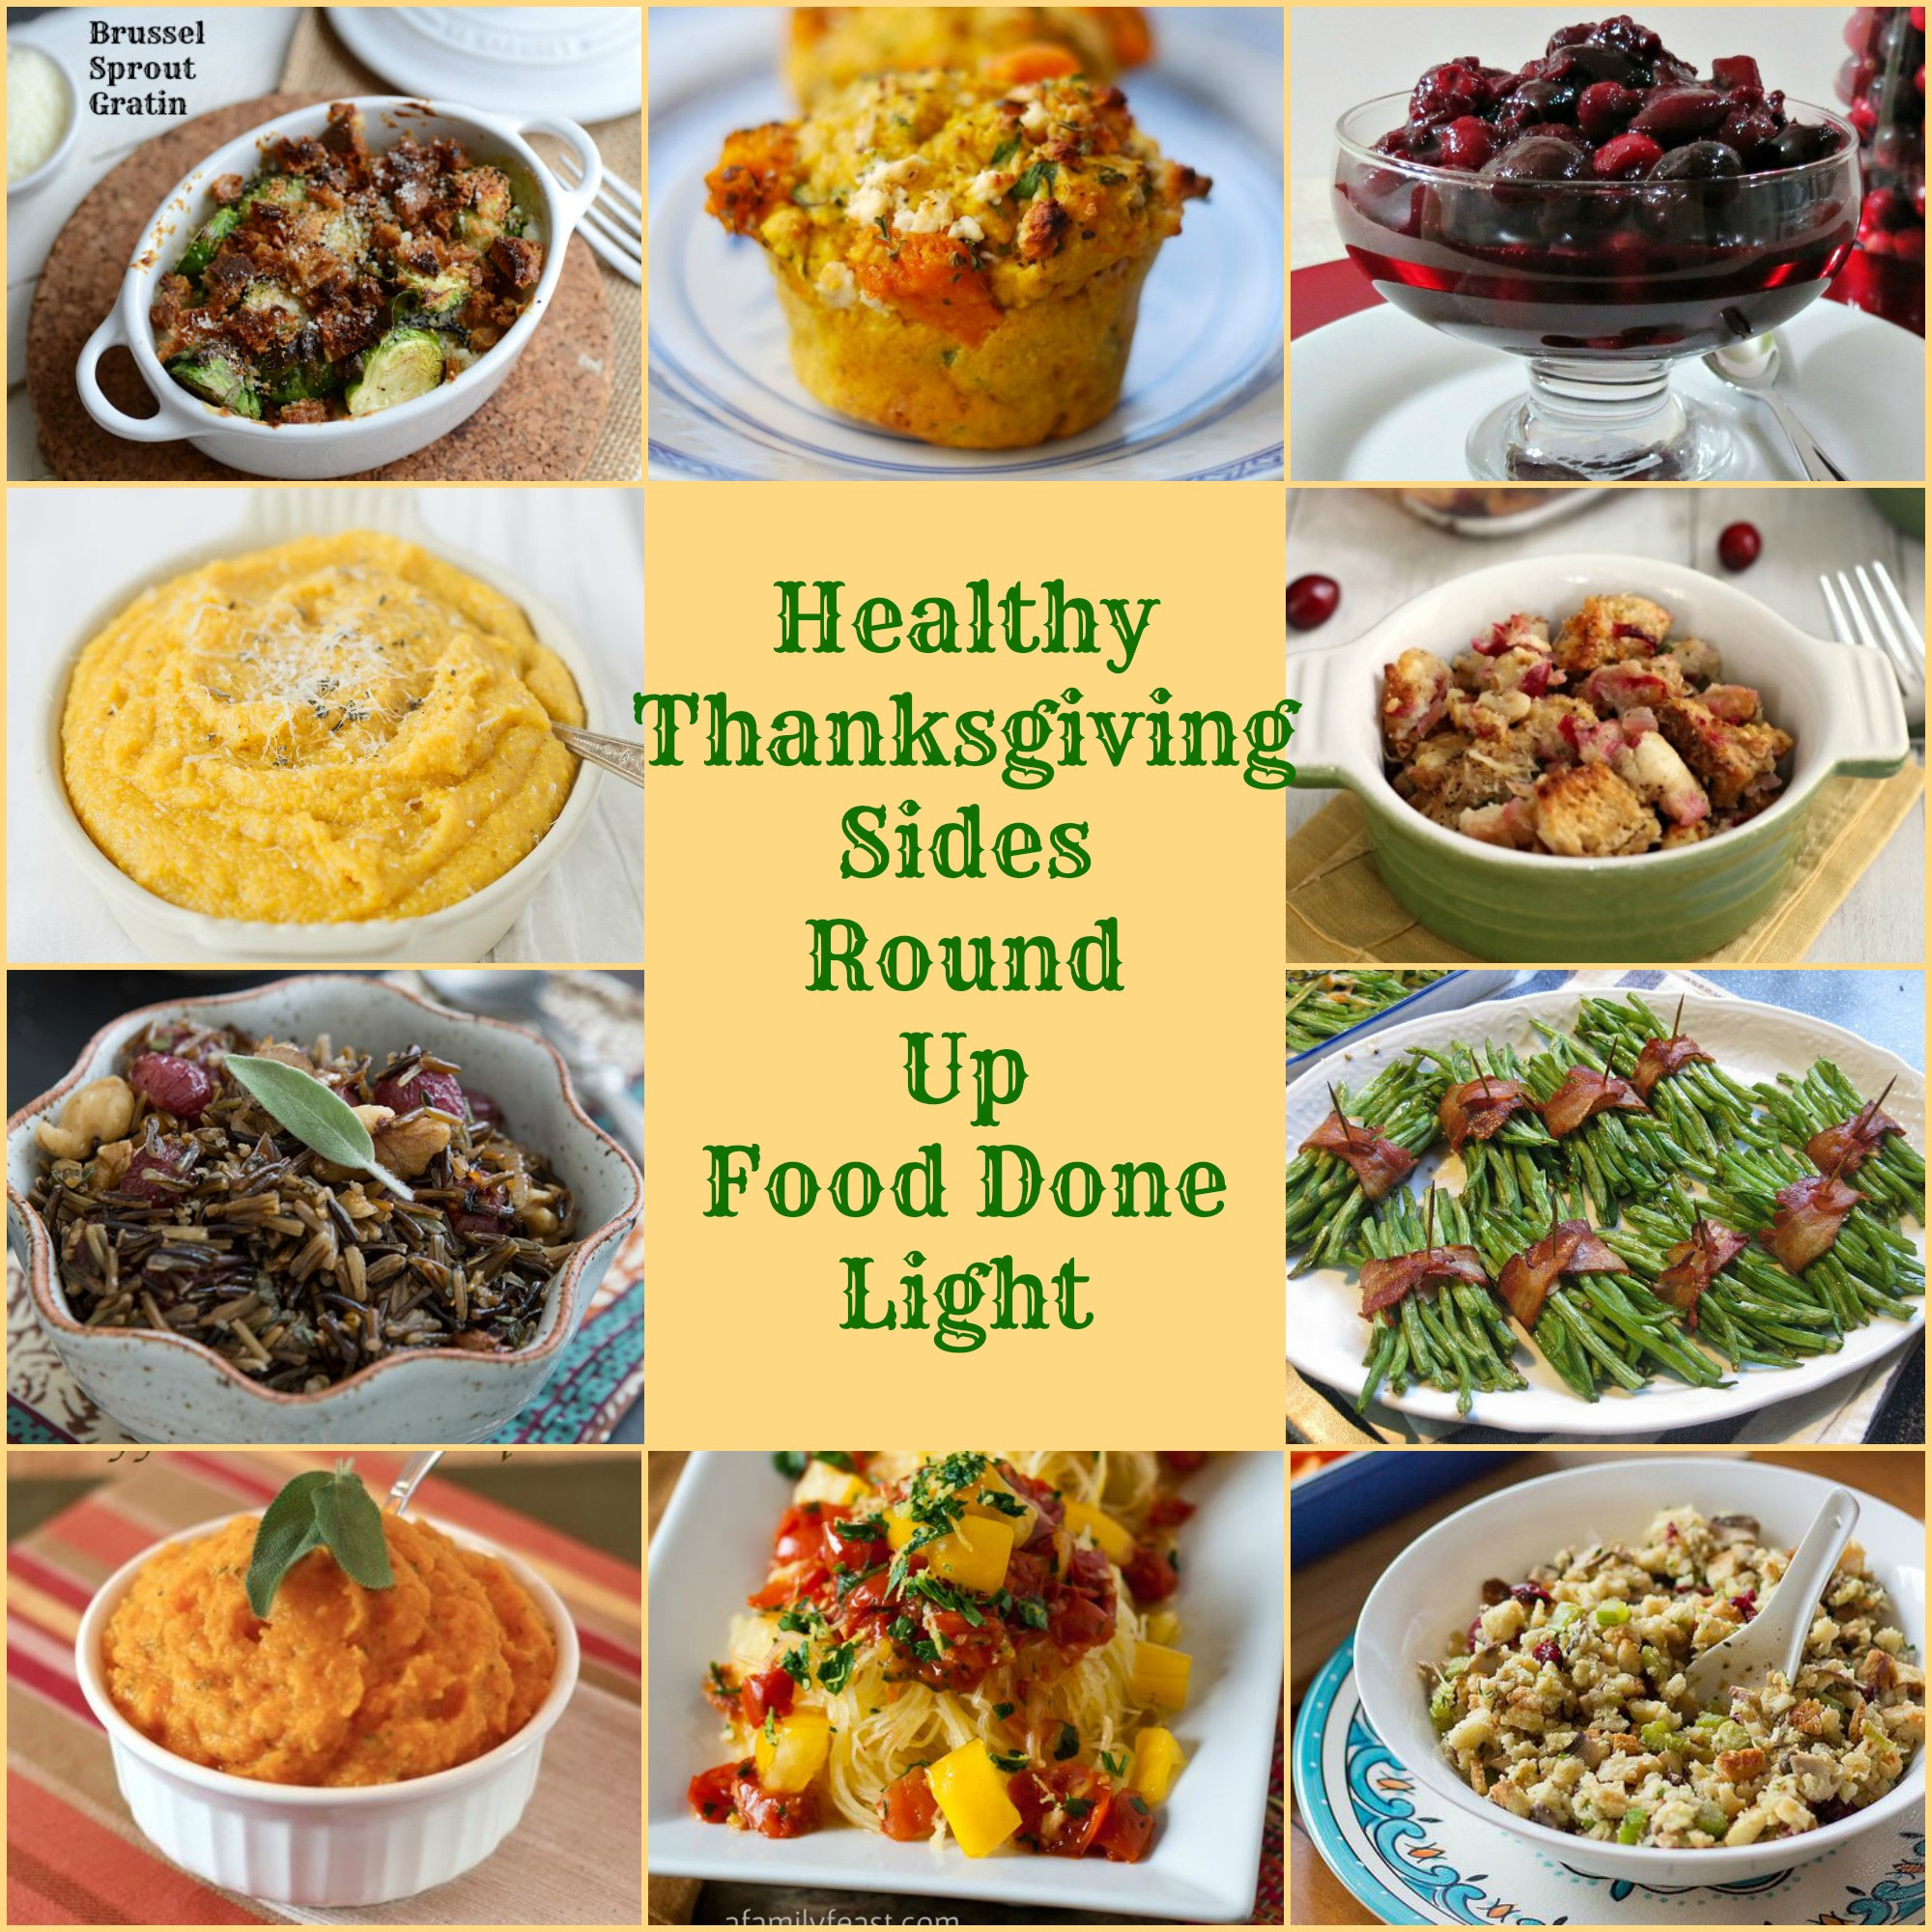 Thanksgiving Dinner Sides  Healthy Thanksgiving Sides Recipe Round Up Food Done Light